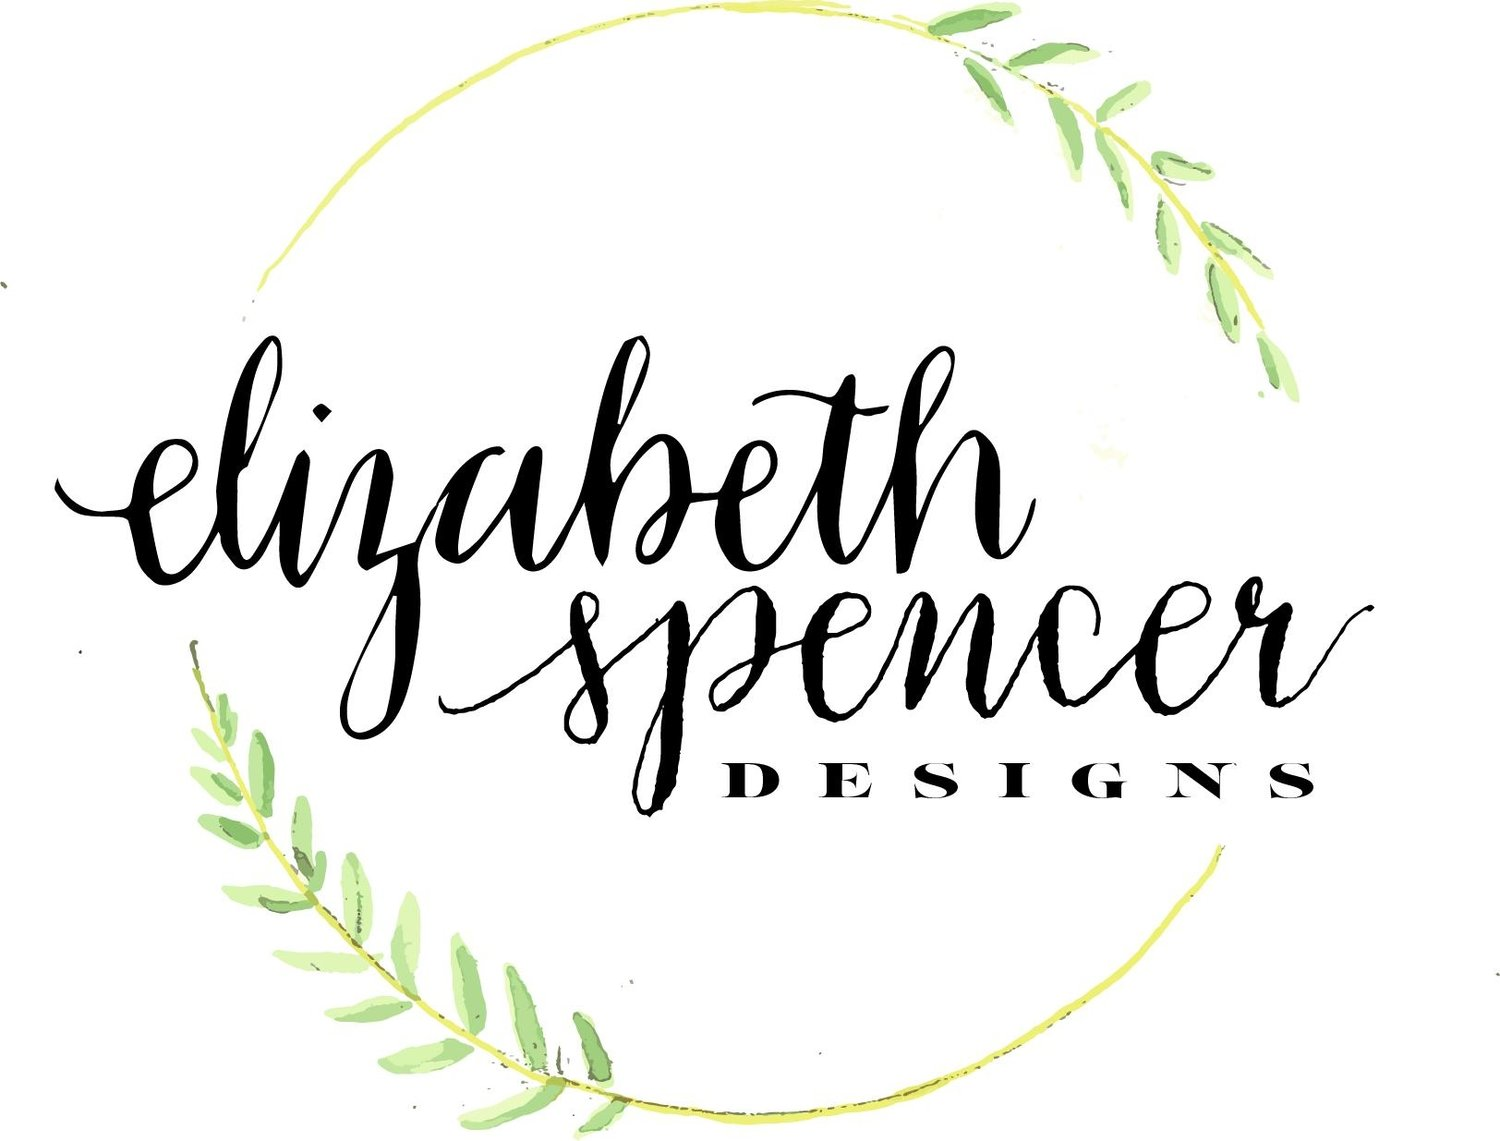 Elizabeth Spencer Designs